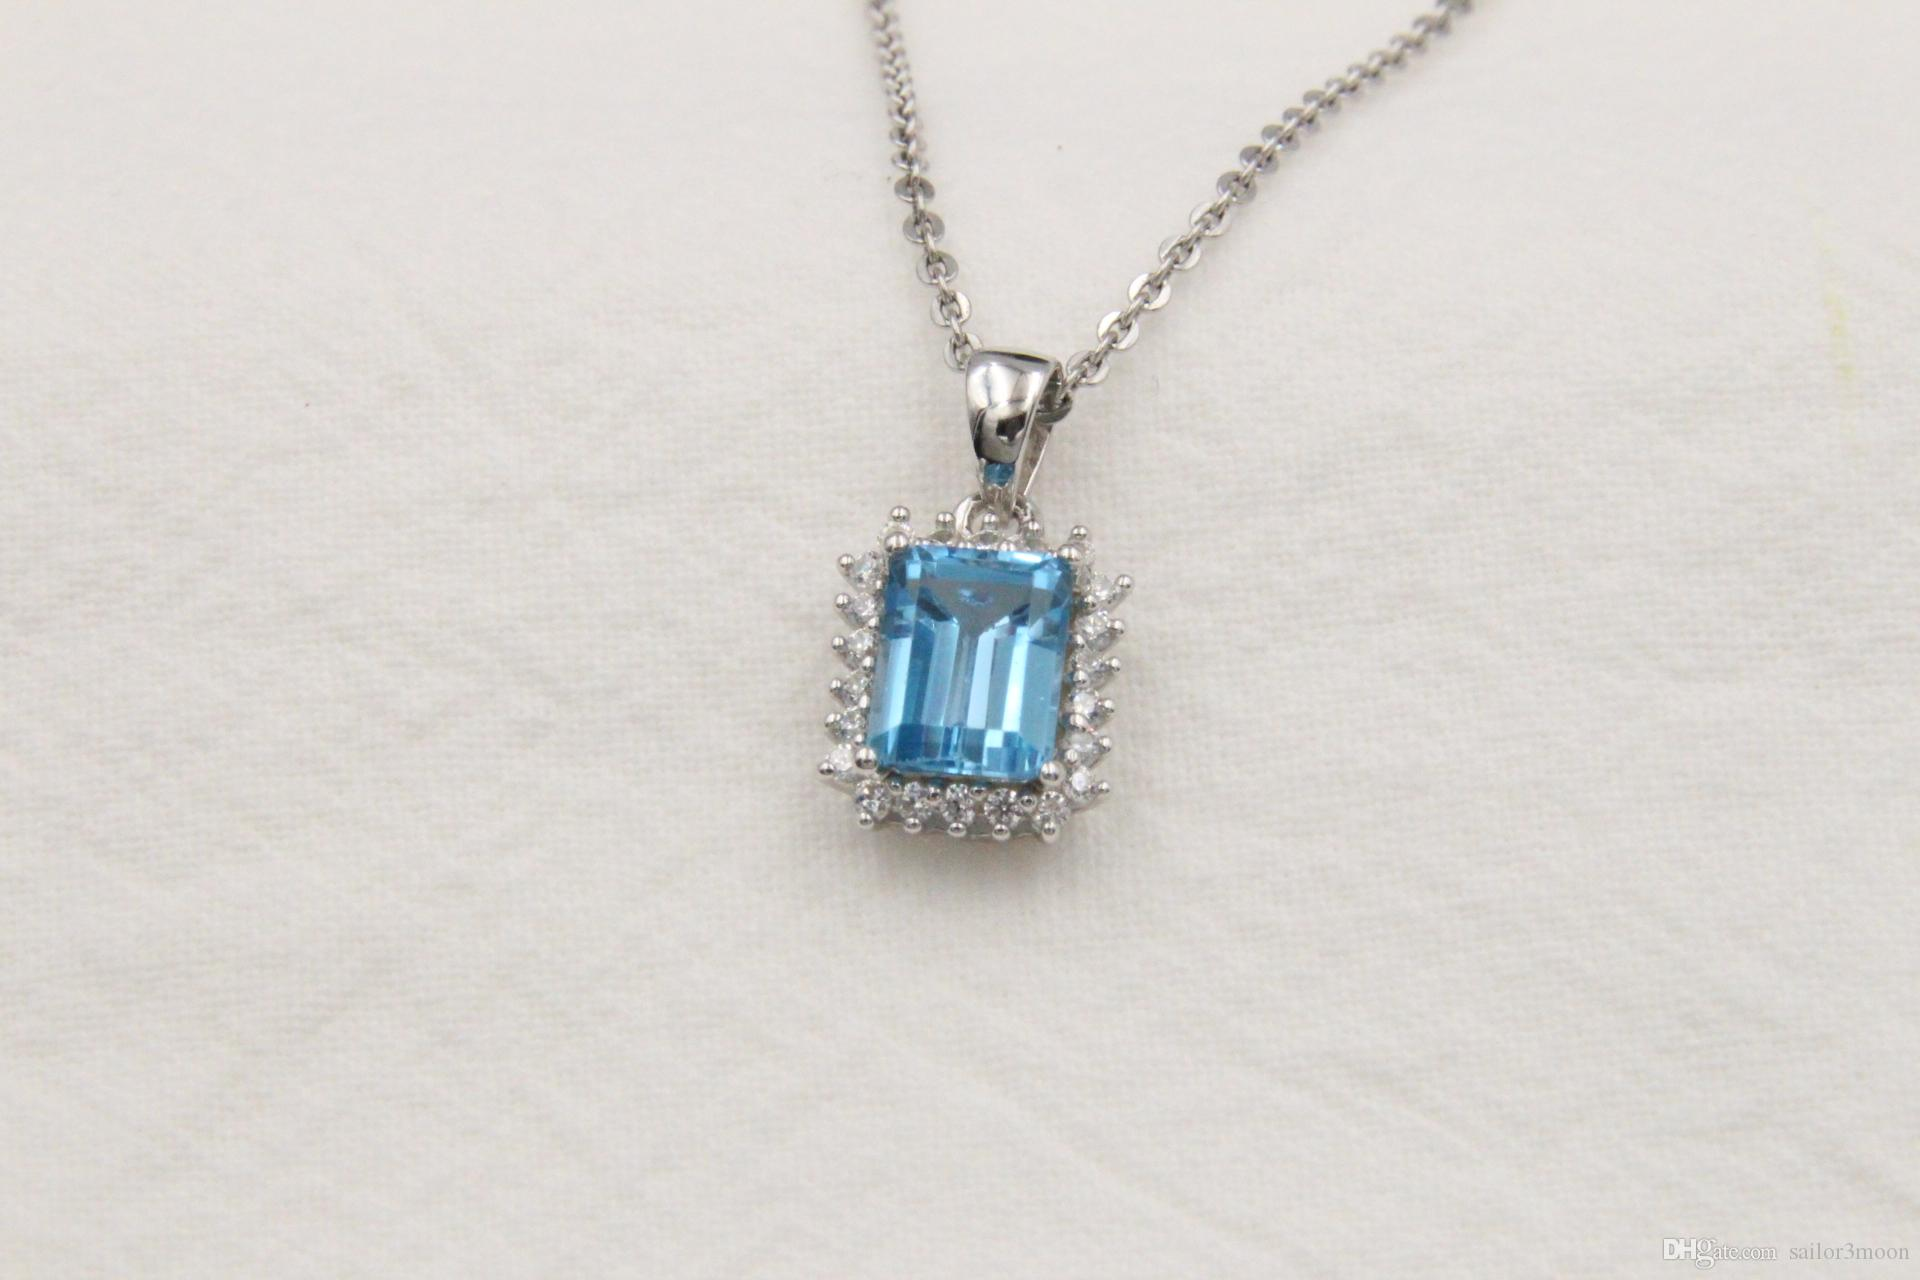 square sloane mcdonough diamond aurora jewellery pendant kiki product mini